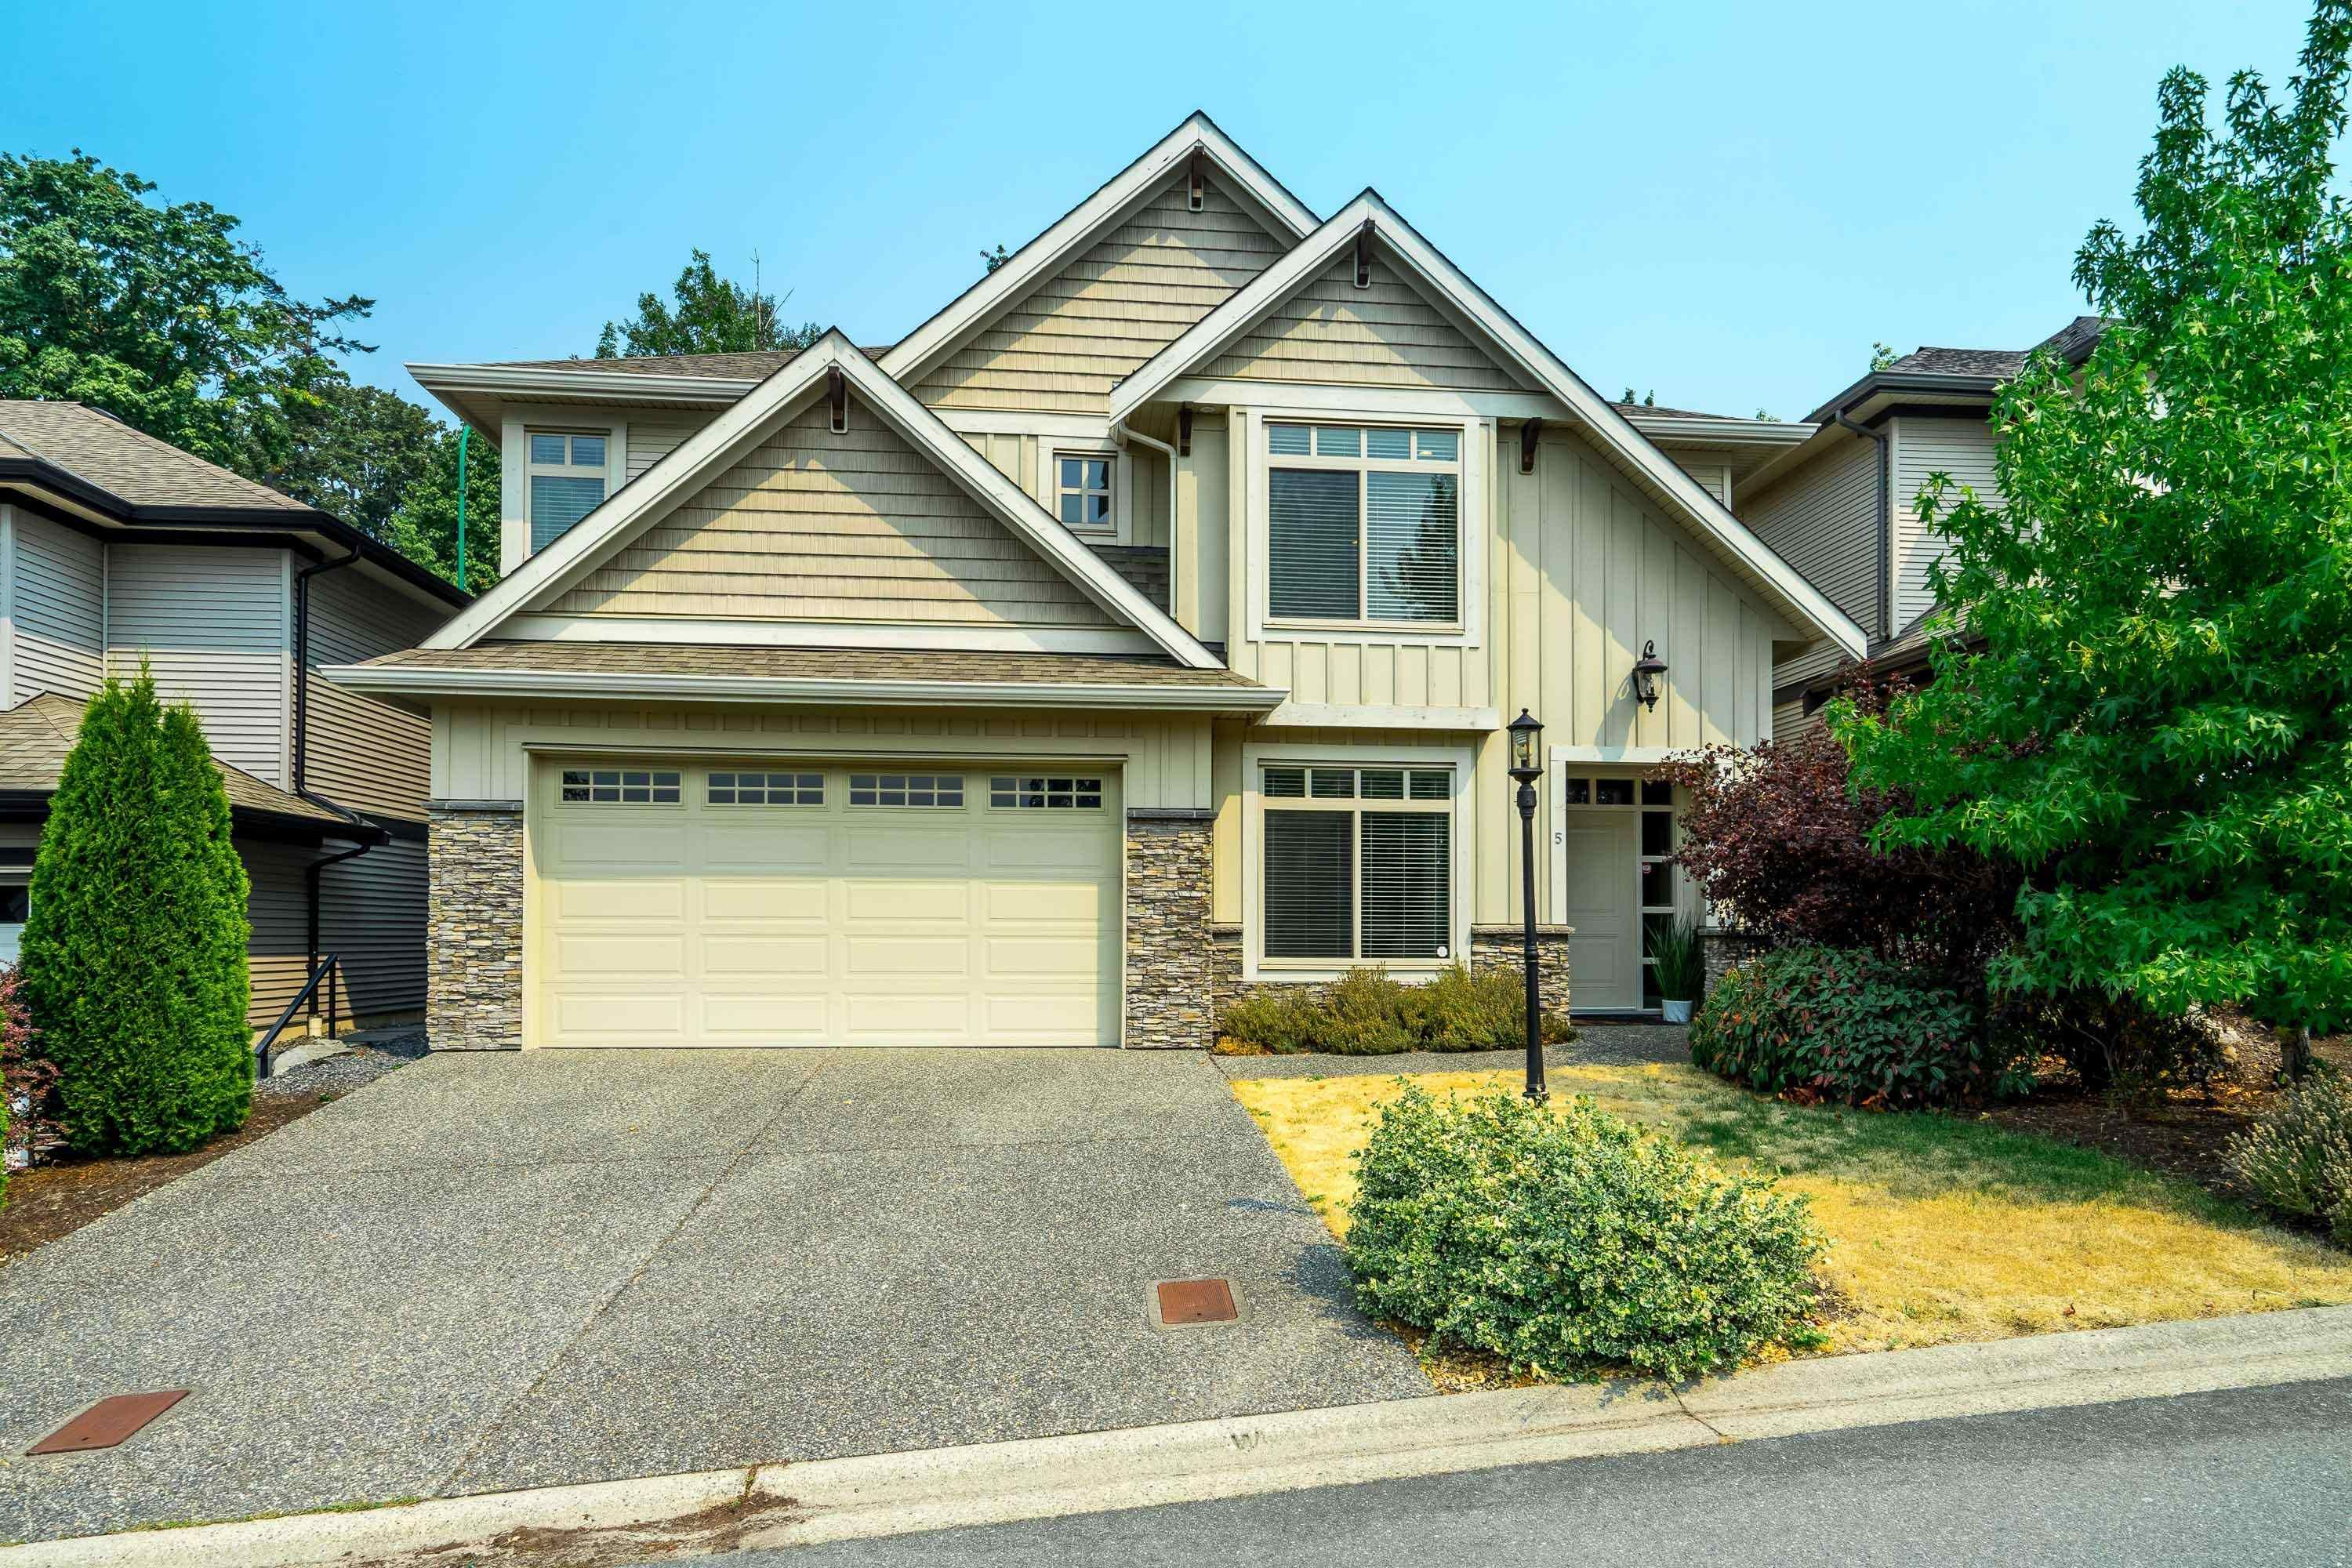 """Main Photo: 5 3457 WHATCOM Road in Abbotsford: Abbotsford East House for sale in """"The Pines"""" : MLS®# R2609632"""